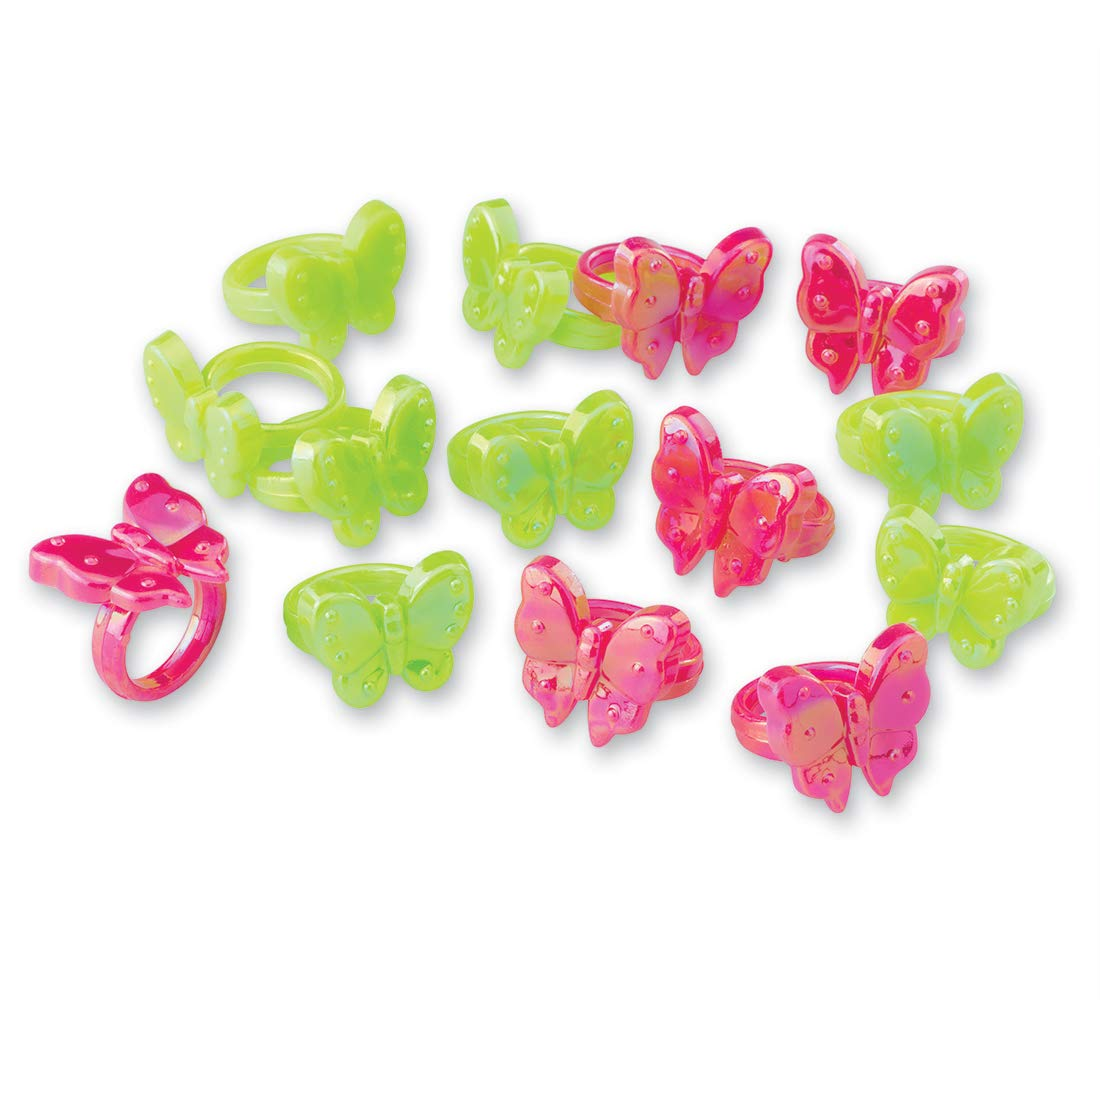 SmileMakers Plastic Butterfly Rings - Prizes 144 per Pack